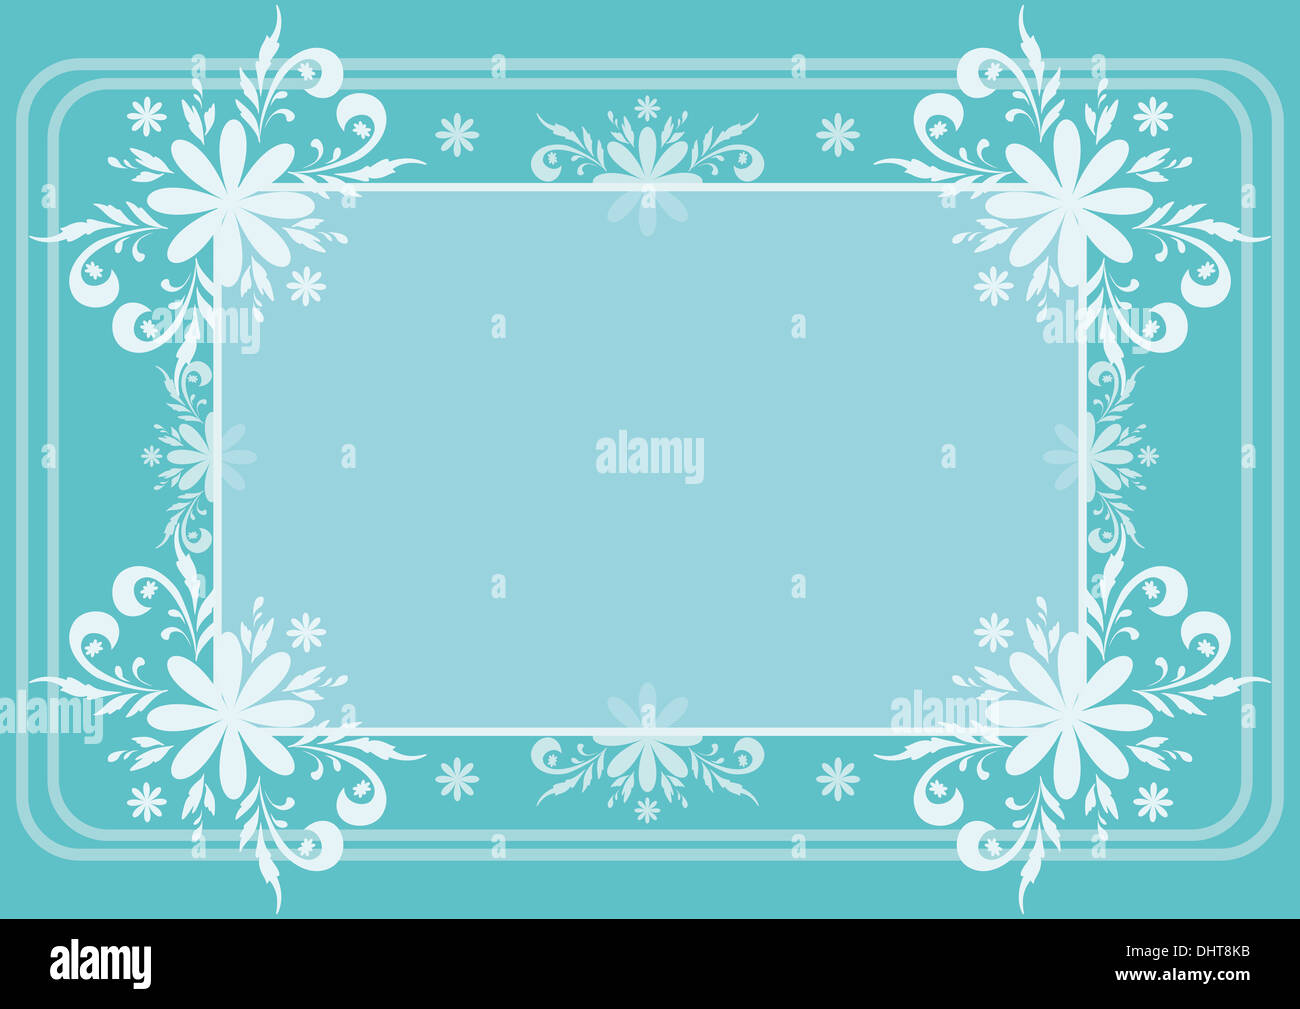 Background, flowers and frame - Stock Image